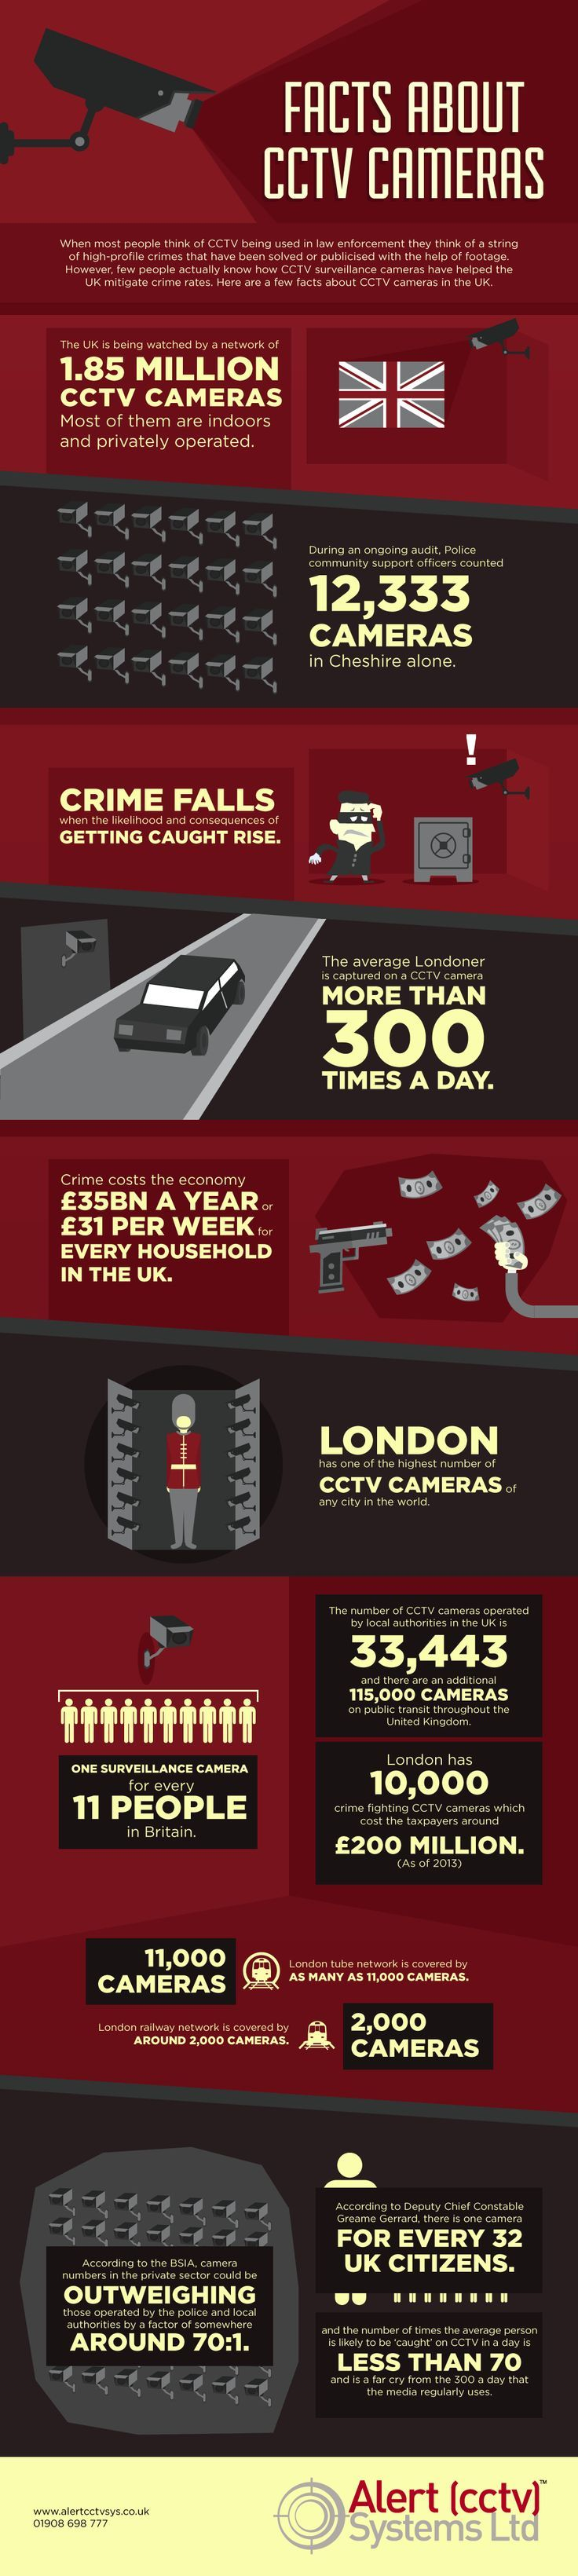 Dystopian Facts about London. possibly include in map (but more related to the Barbican).